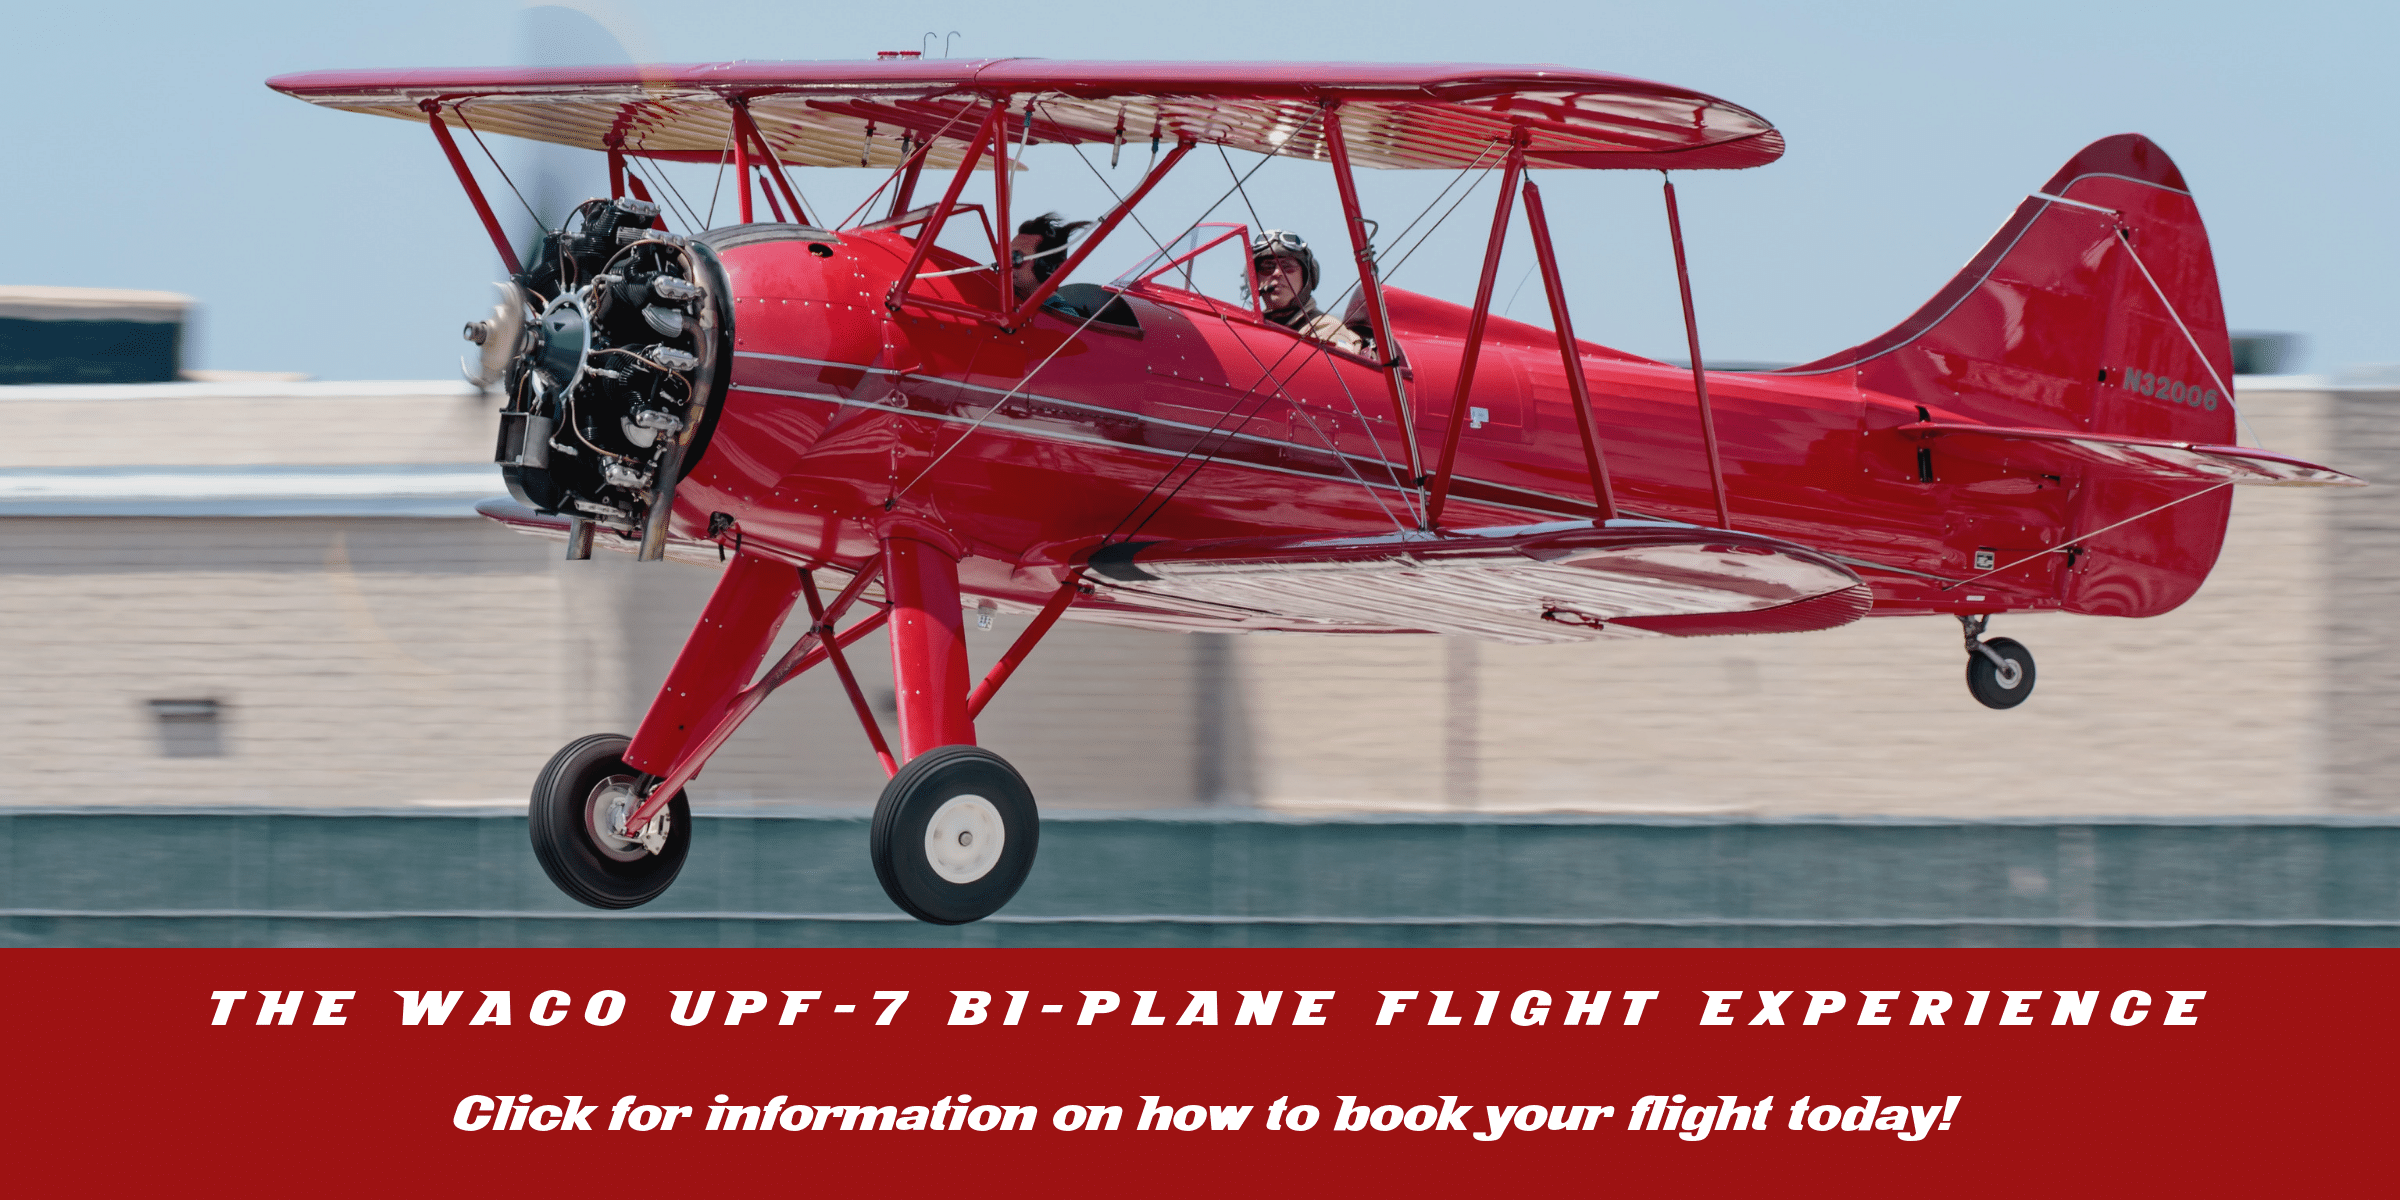 Fly in the open cockpit WACO UPF-7 Bi-Plane! - American Airpower Museum